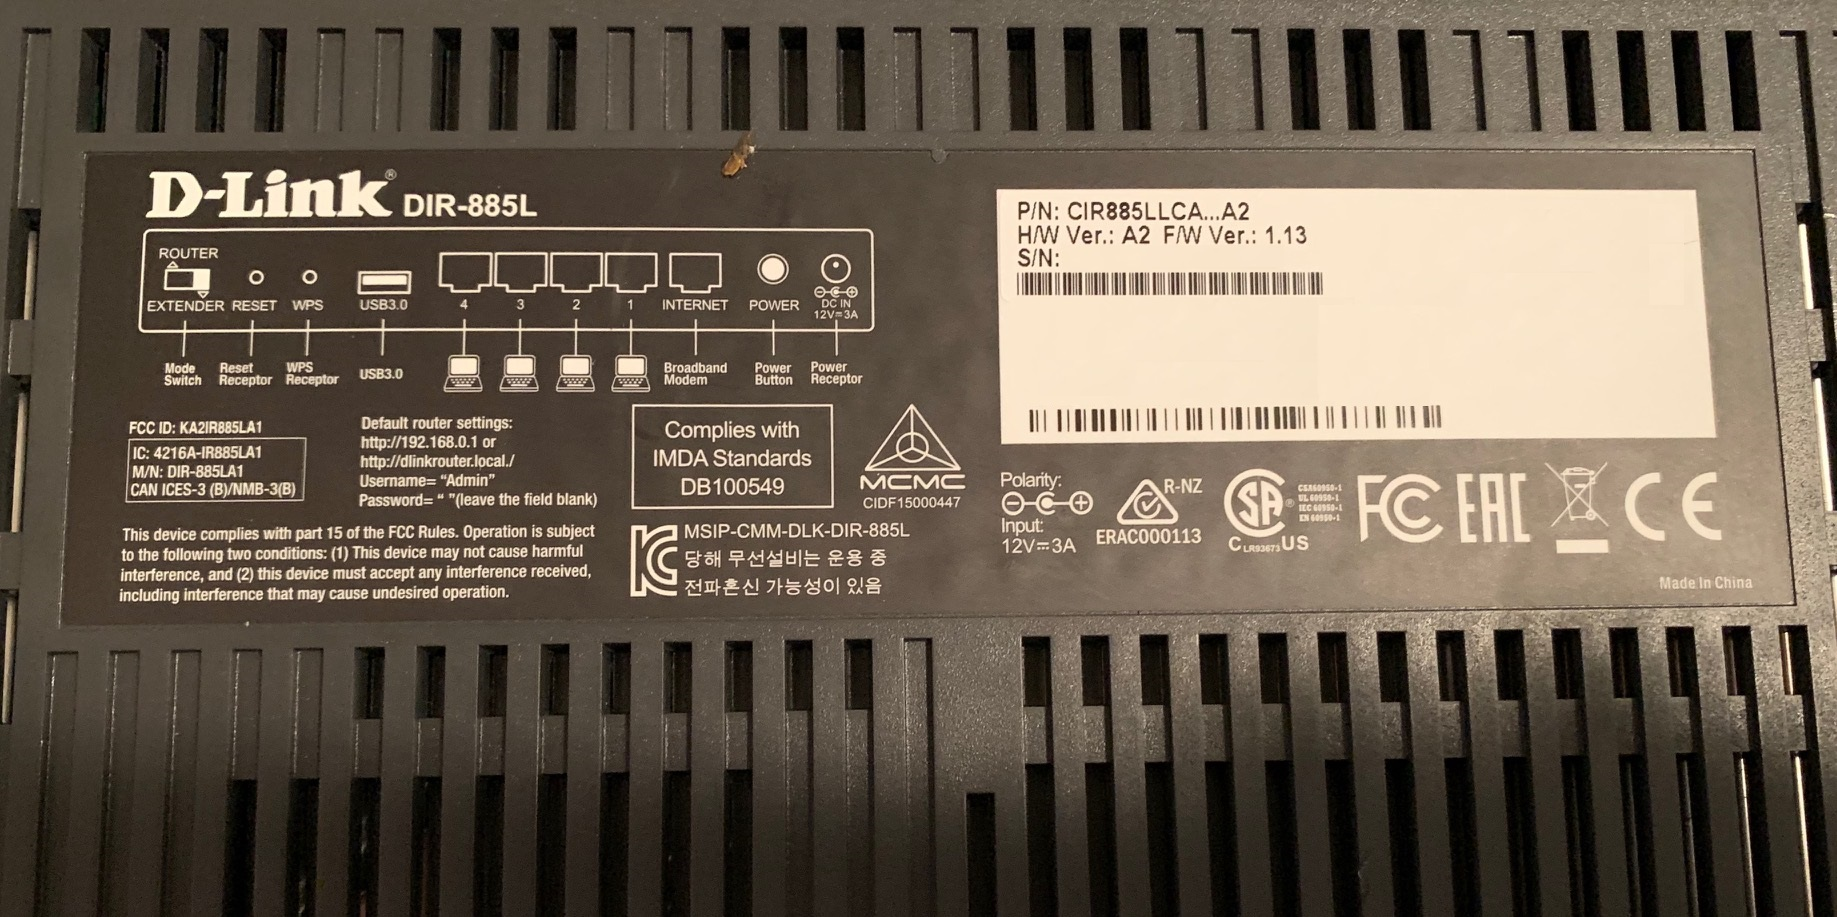 DD-WRT Forum :: View topic - D-Link 885L/R A2 - support?